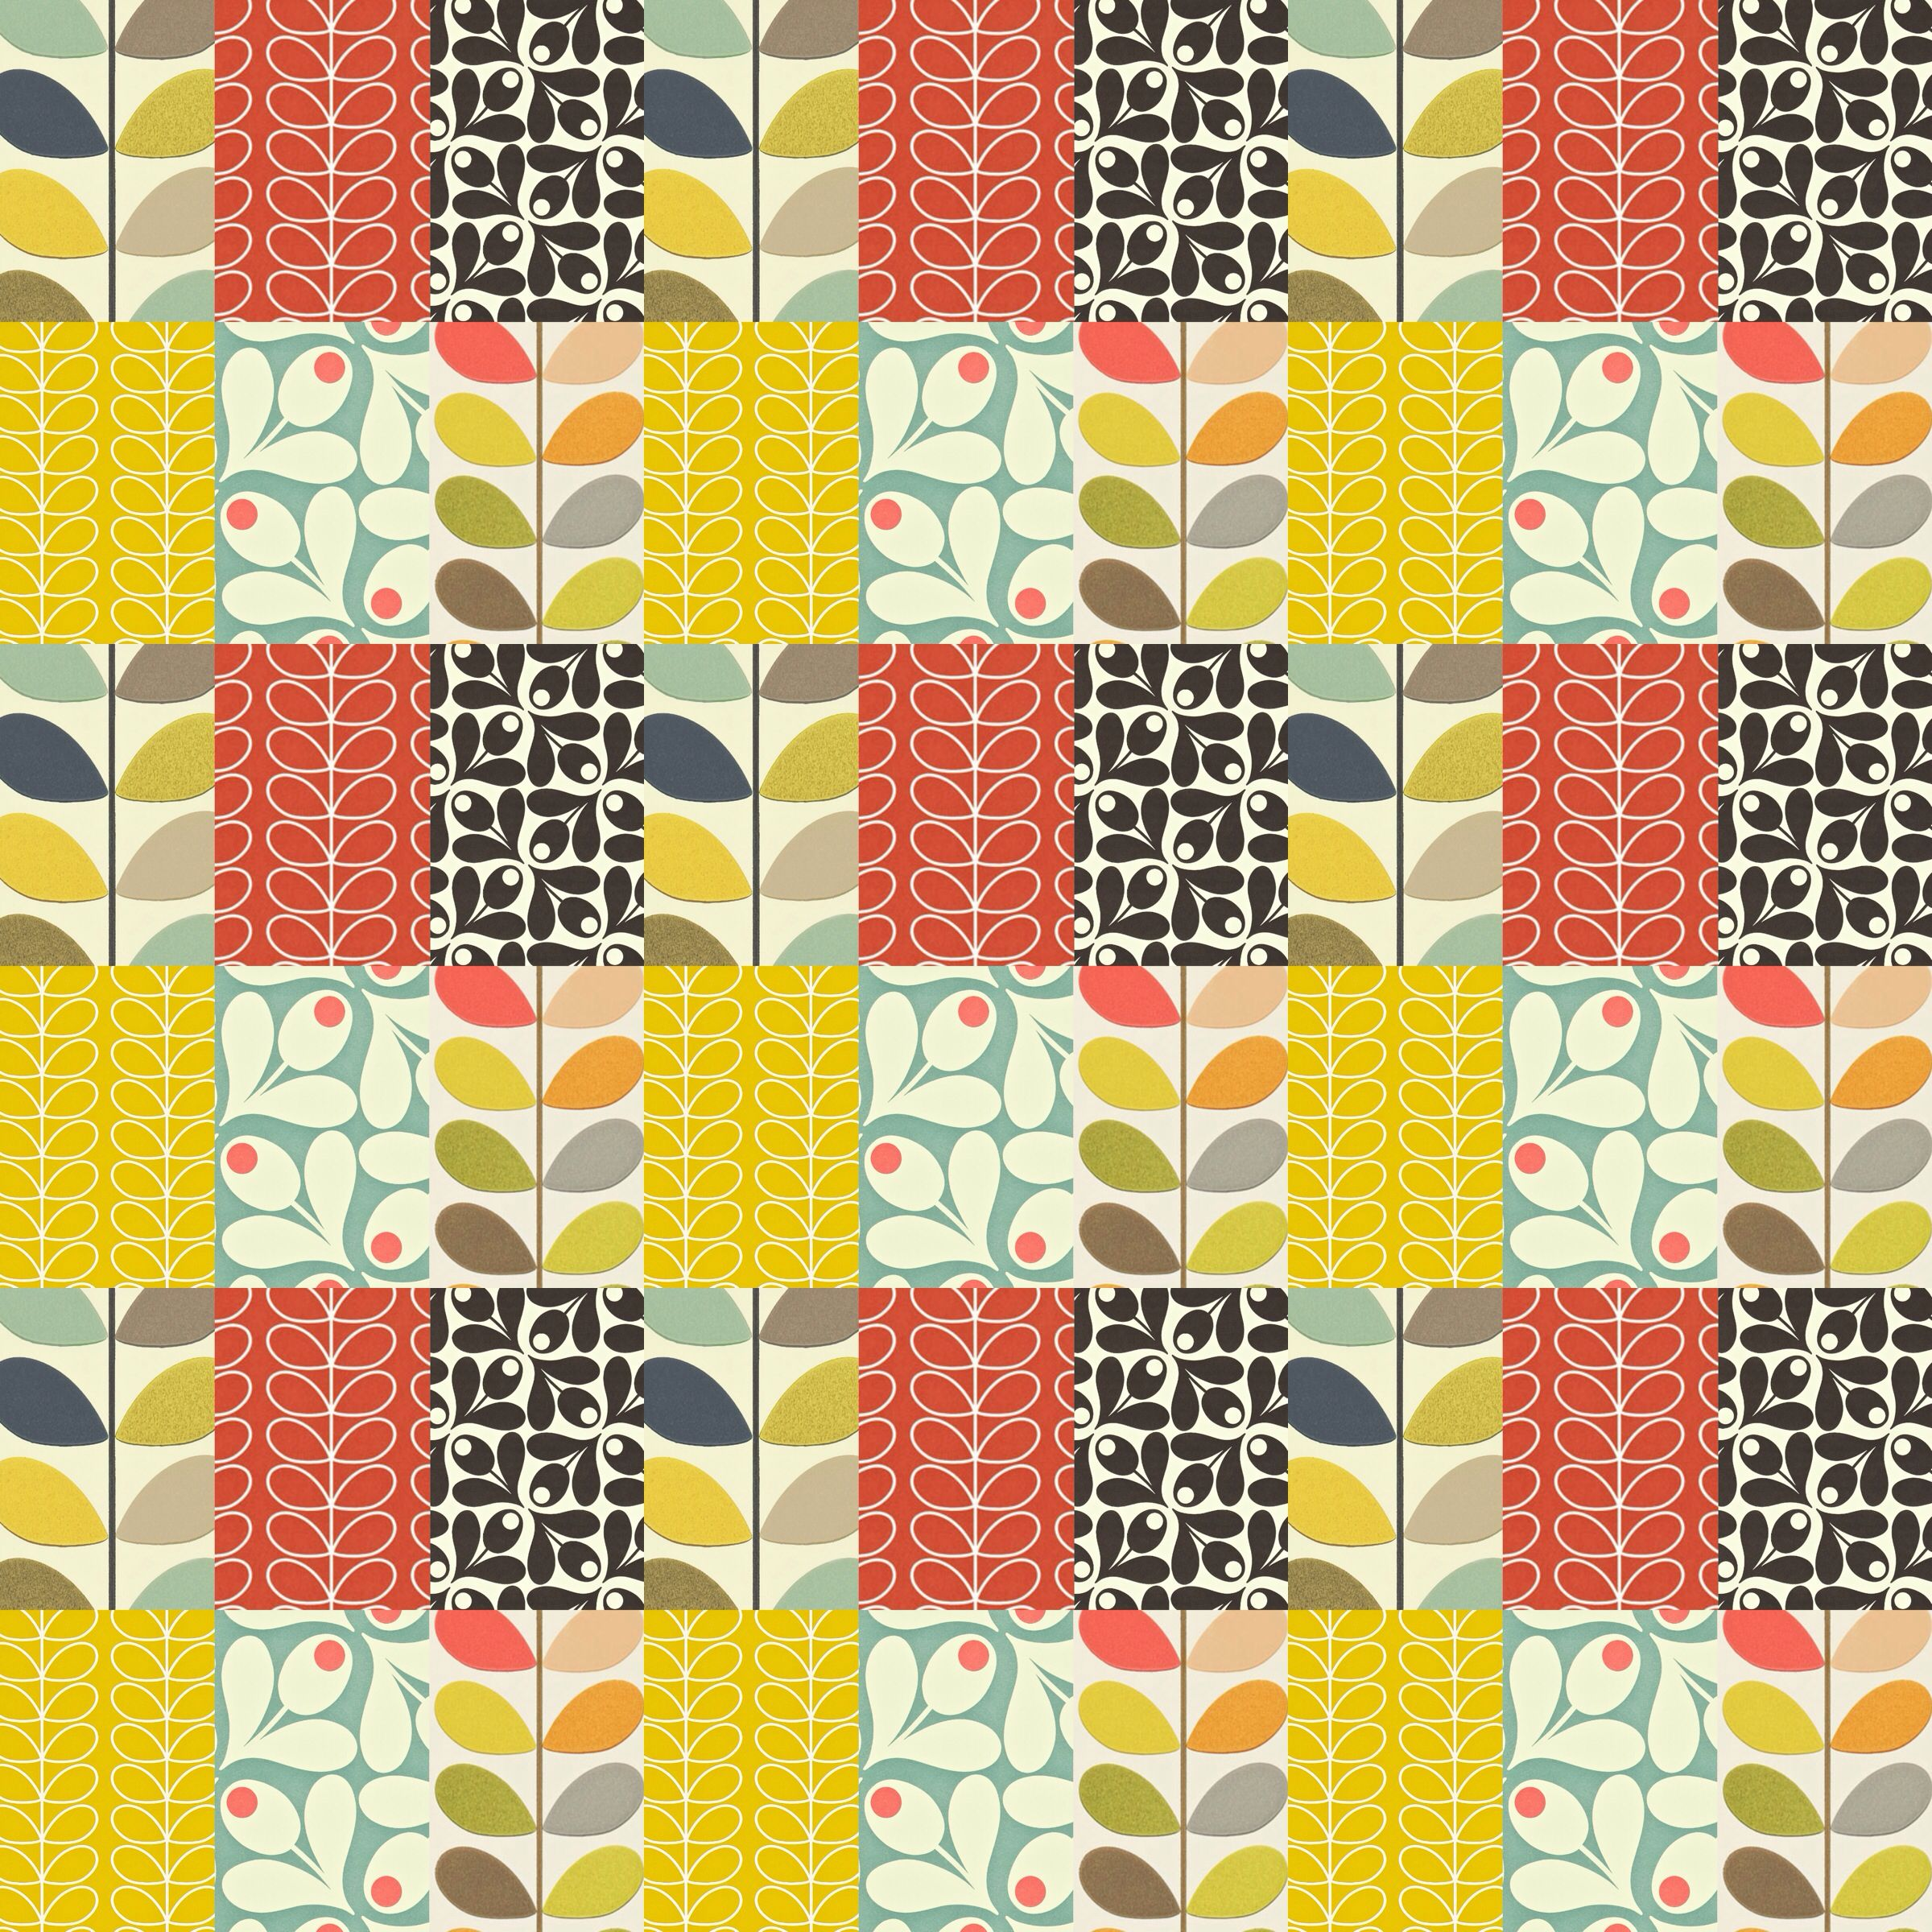 Orla Kiely wallpaper for my phone.